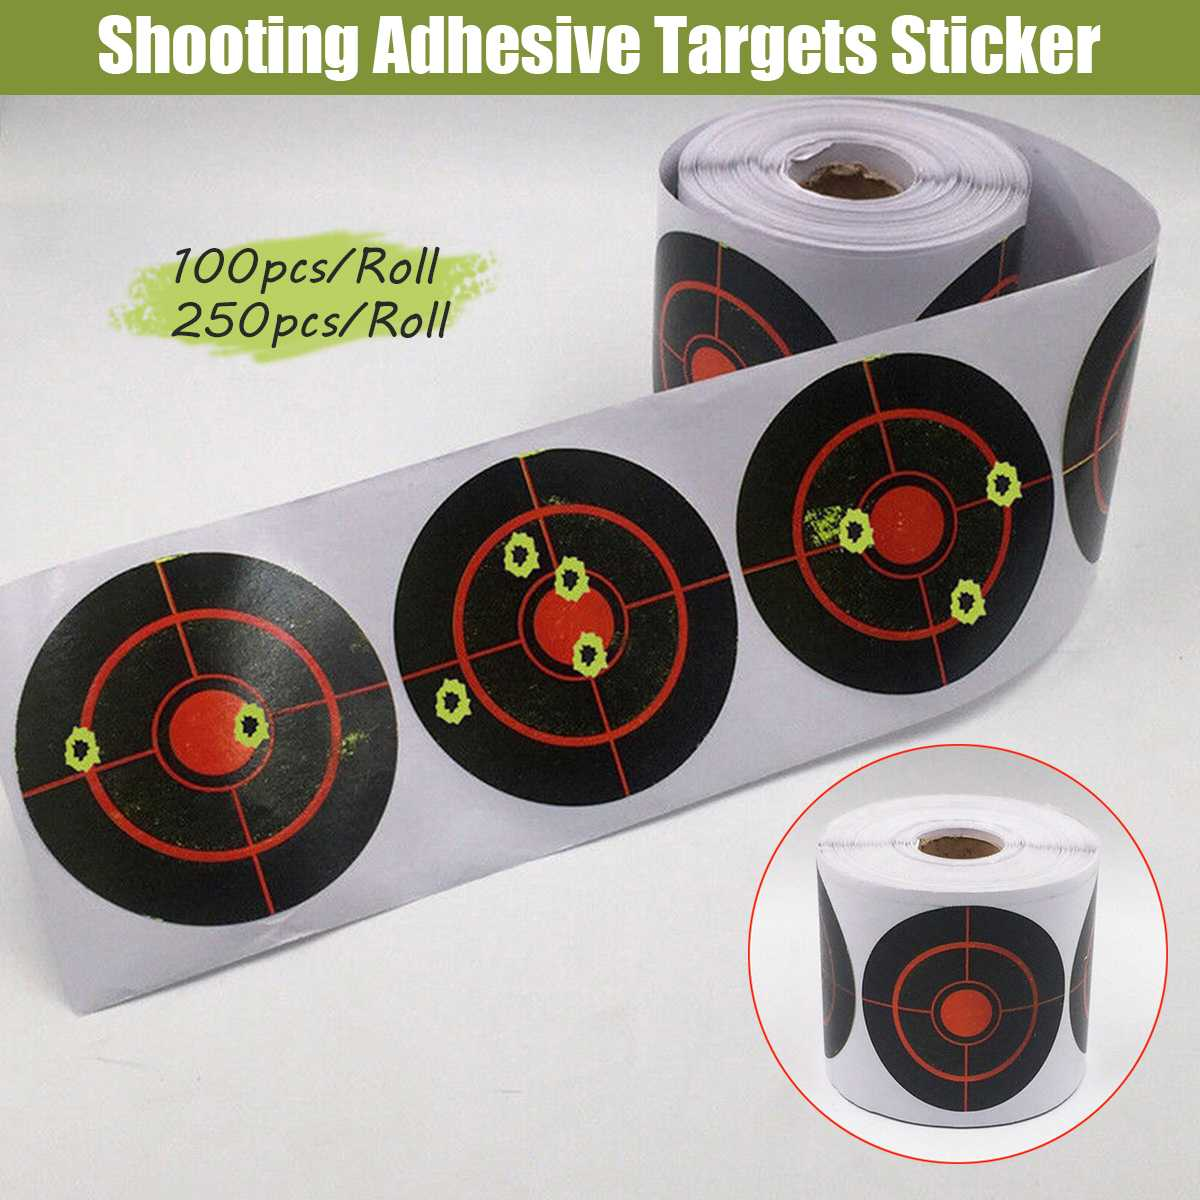 100/250pcs/Rol Shooting Adhesive Targets Splatter Reactive Target Sticker 7.5cm For Archery Bow Hunting Shooting Practice(China)